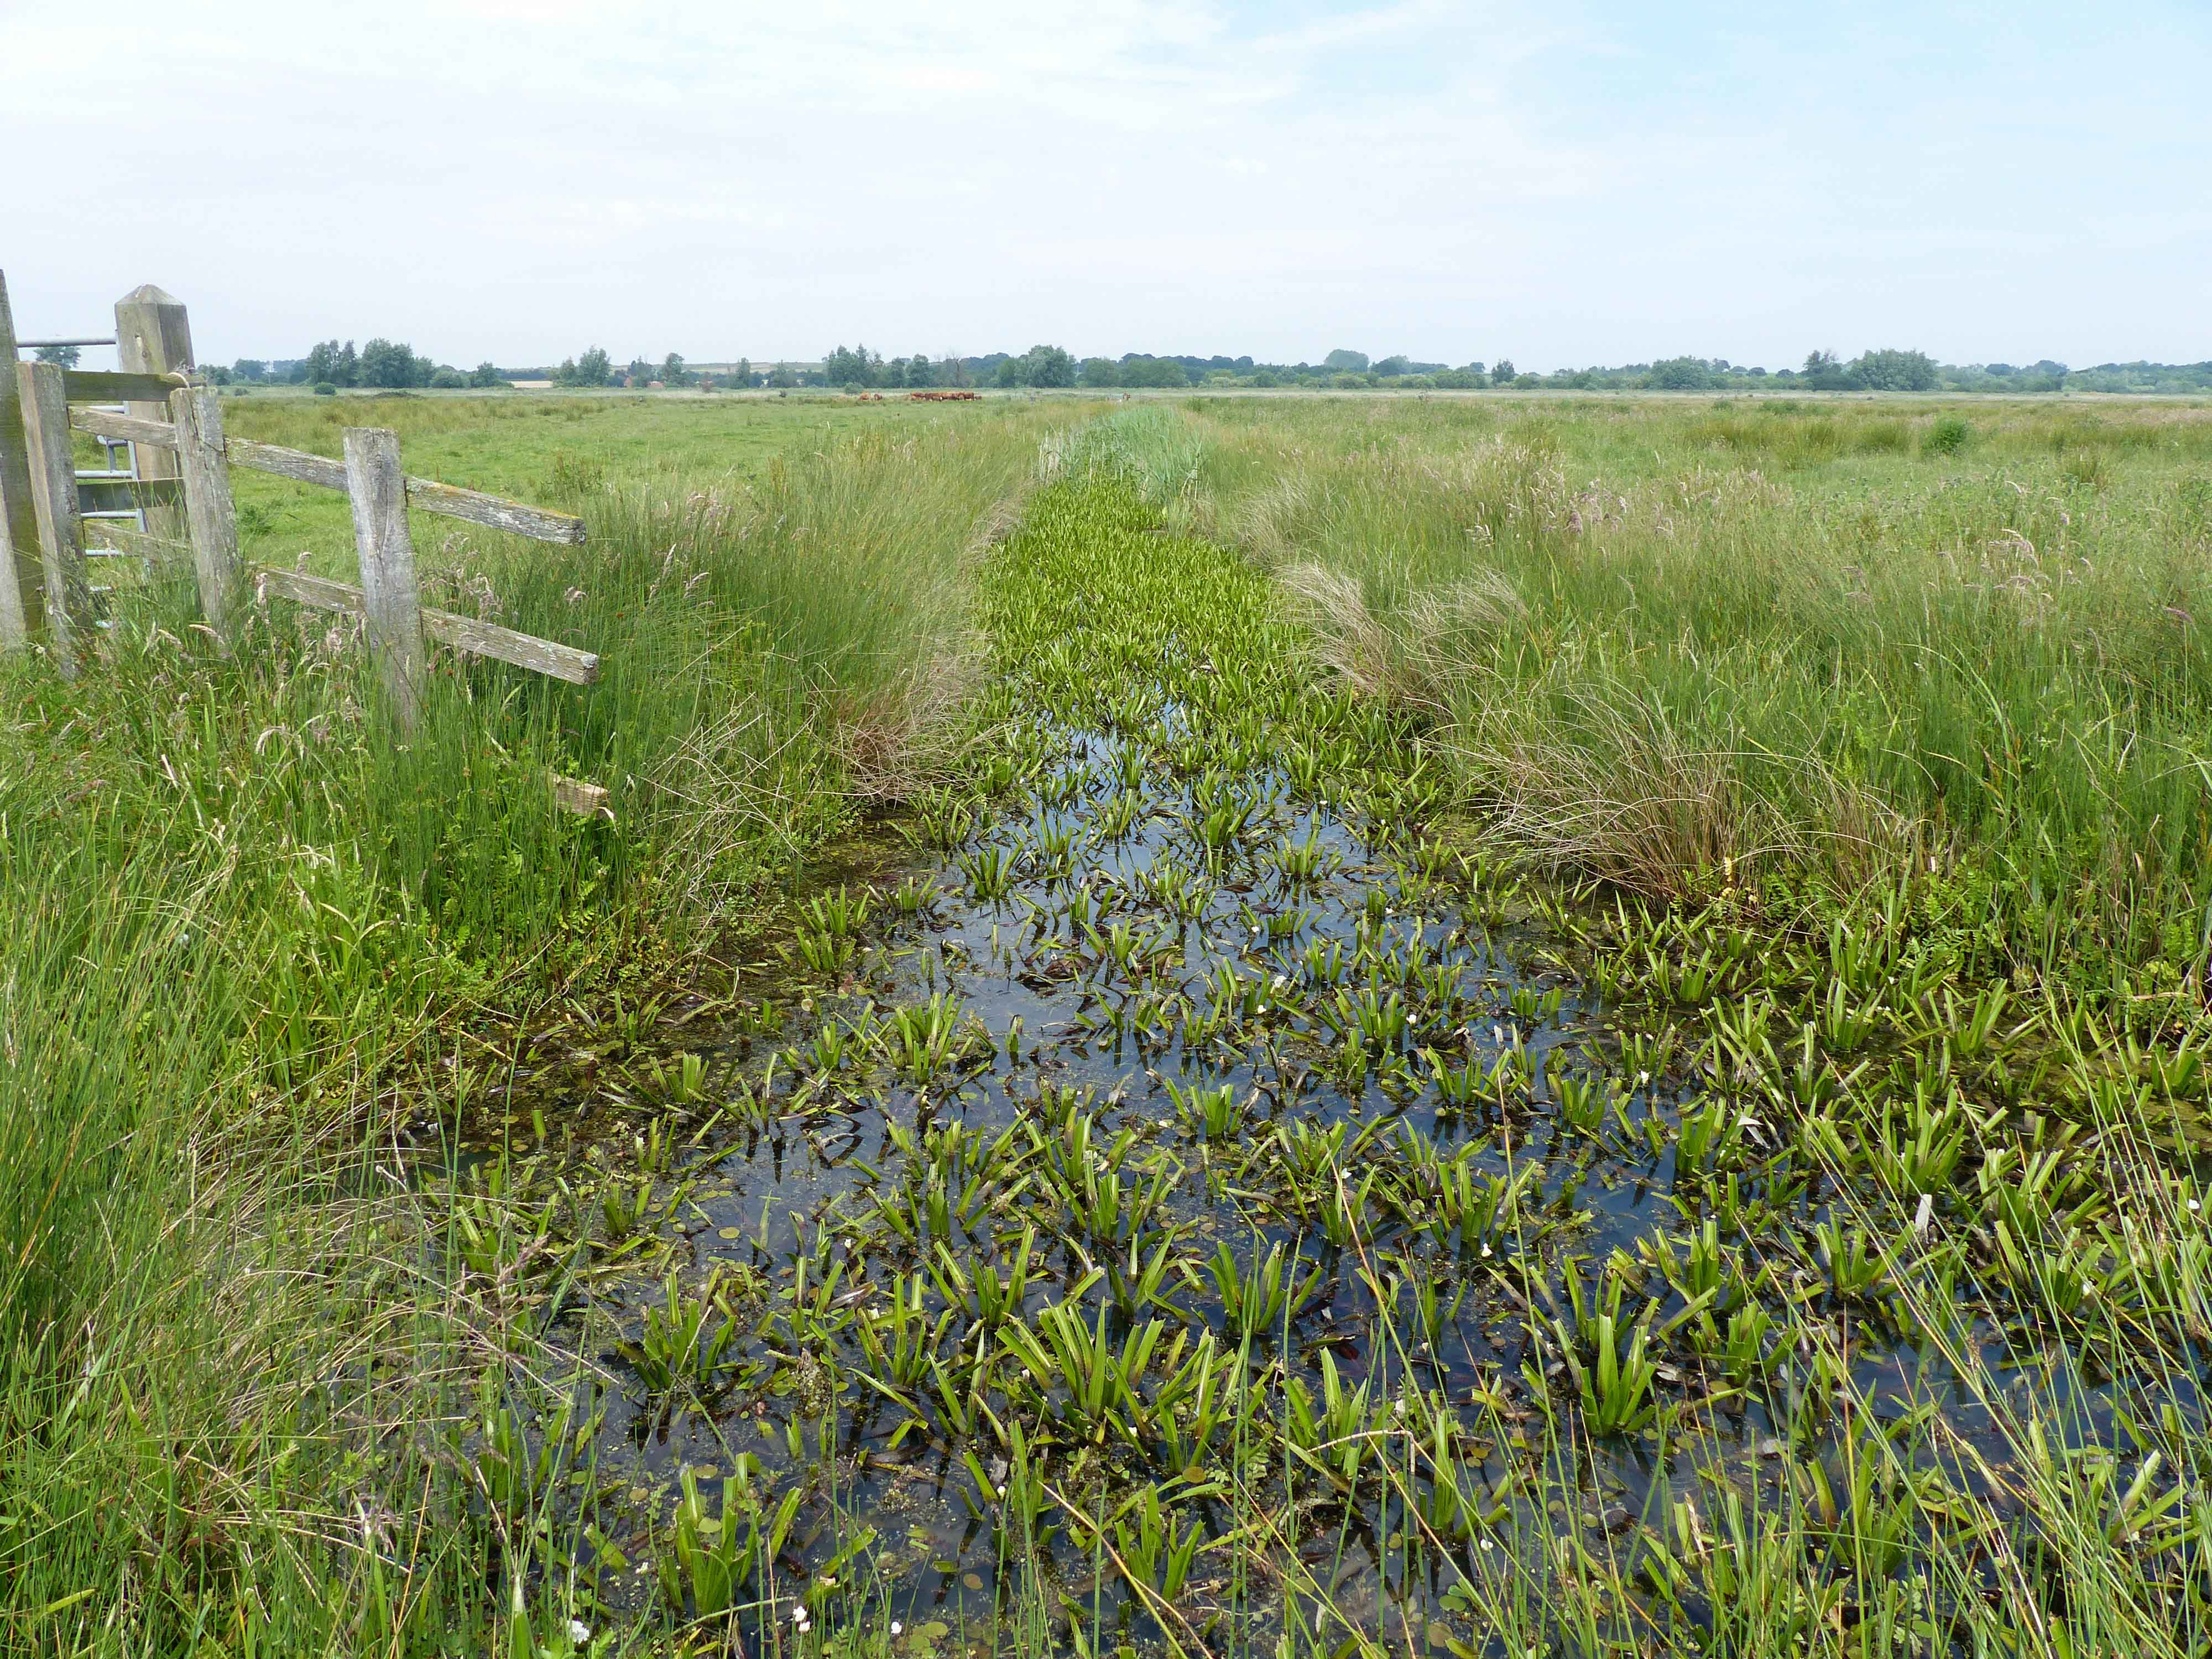 Grazing marsh ditch habitat typical of D. plantarius in Britain and the Netherlands